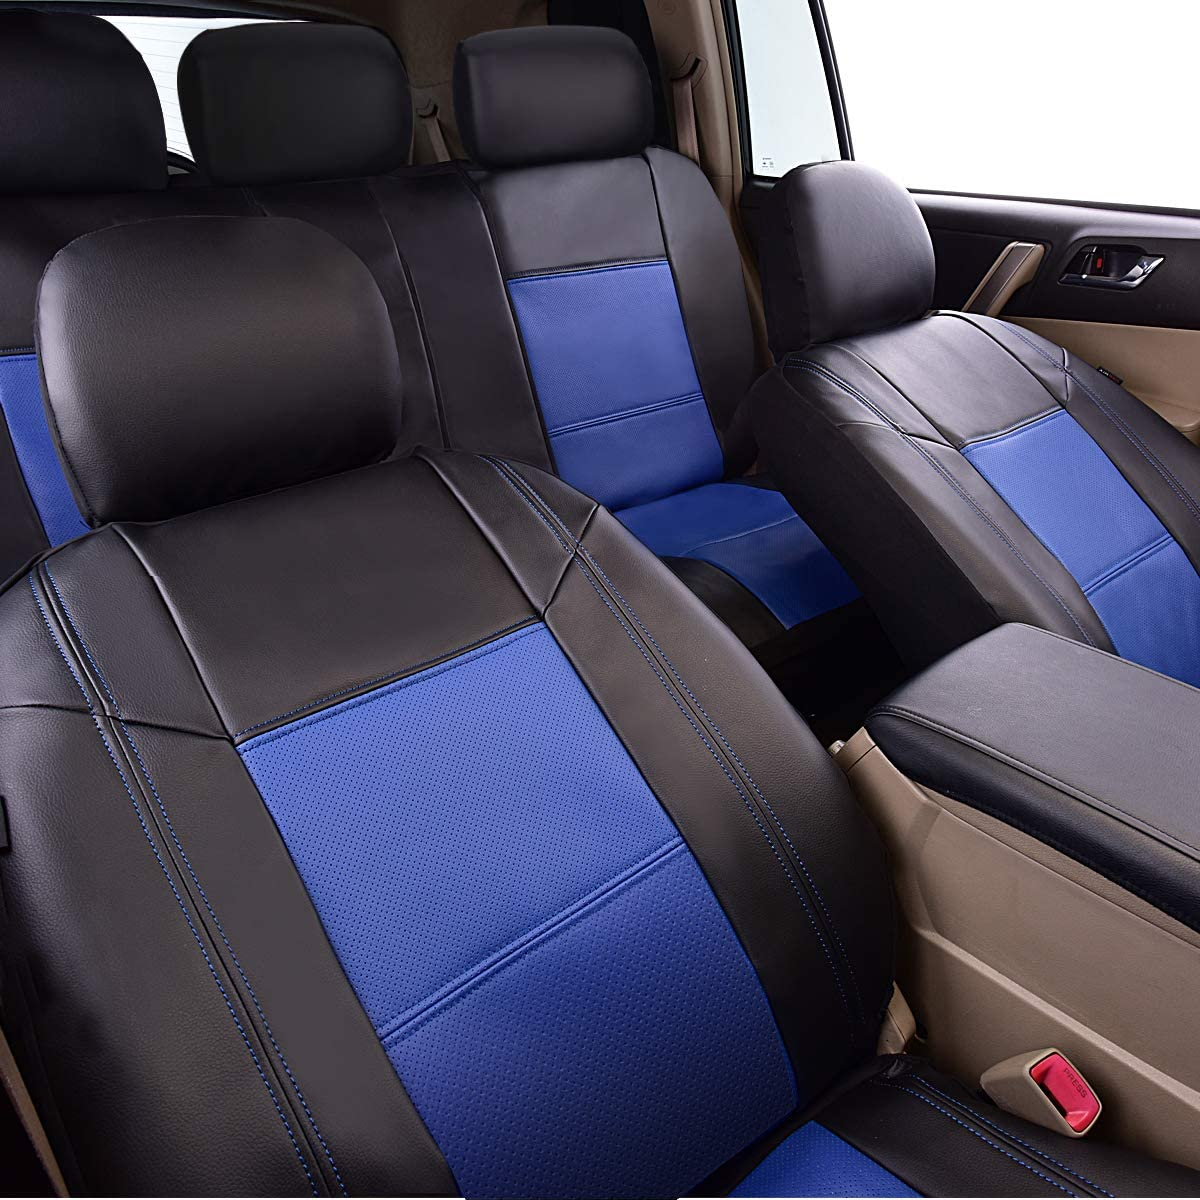 NEW ARRIVAL- CAR PASS Skyline PU LEATHER CAR SEAT COVERS 6PCS, ELEGANT BLACK WITH BEIGE UNIVERSAL FIT FOR CARS,SUV,VEHICLES 5mm Composite Sponge Inside,Airbag Compatible by CAR PASS